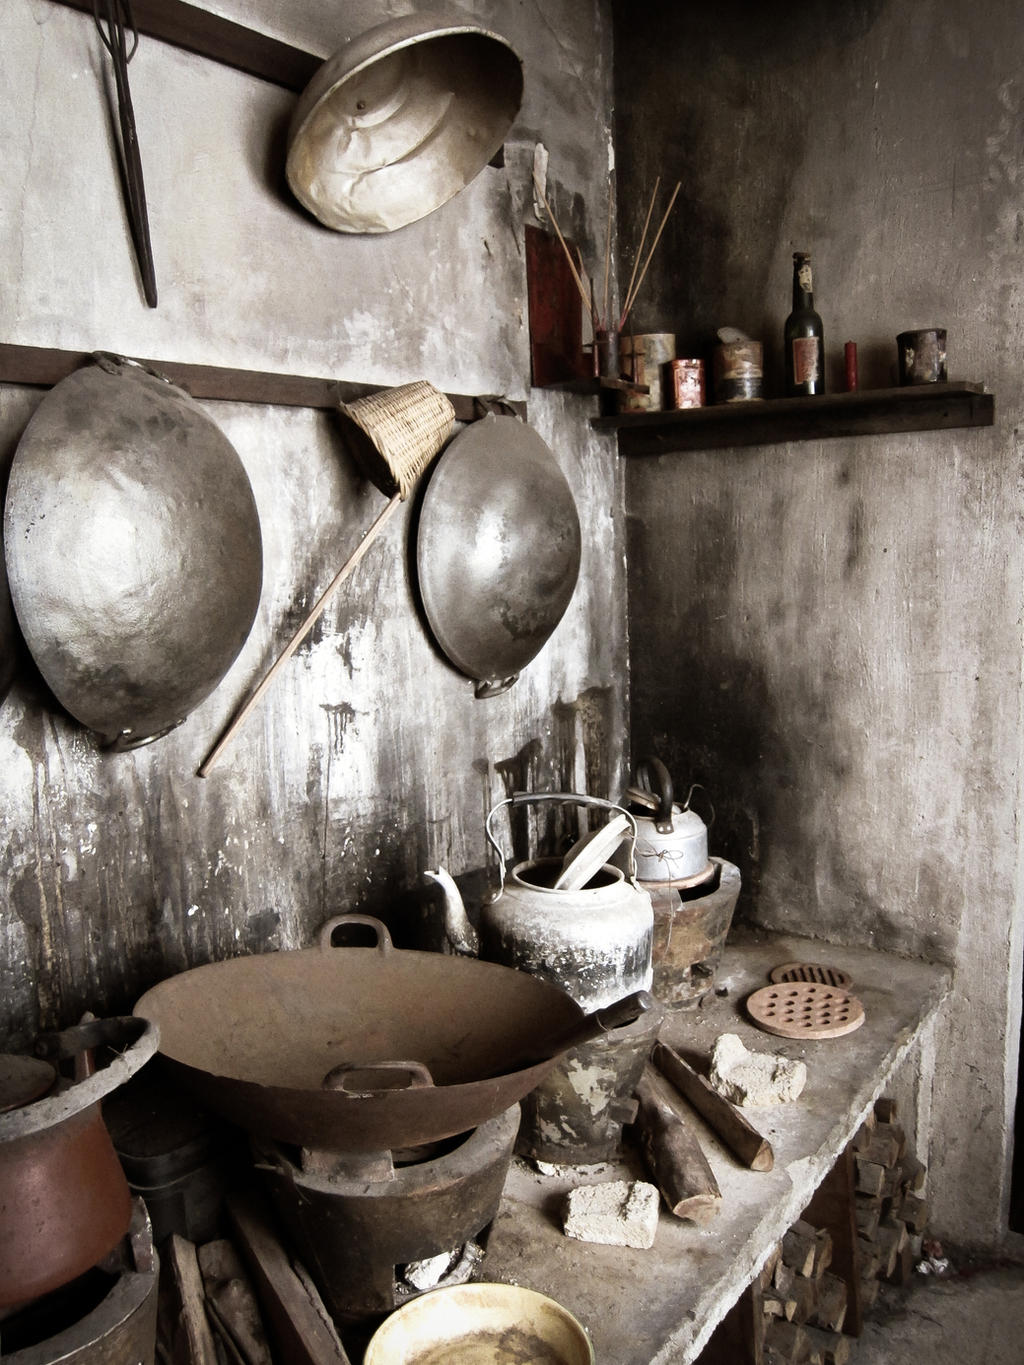 Old Chinese Kitchen By Niksi13 Old Chinese Kitchen By Niksi13